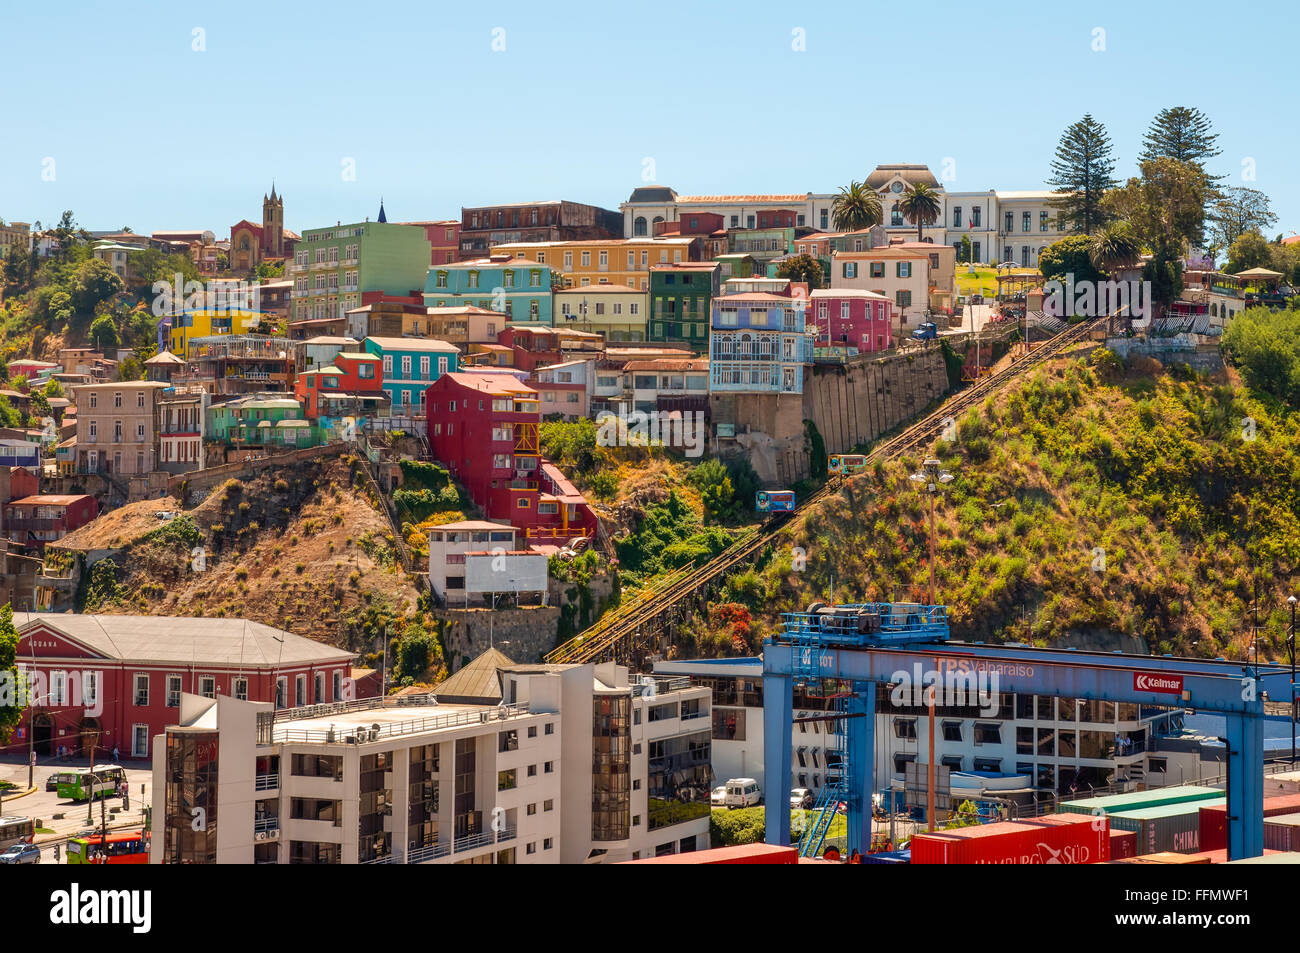 Two cars of Funicular in Valparaiso, Chile against background of colorful houses. - Stock Image